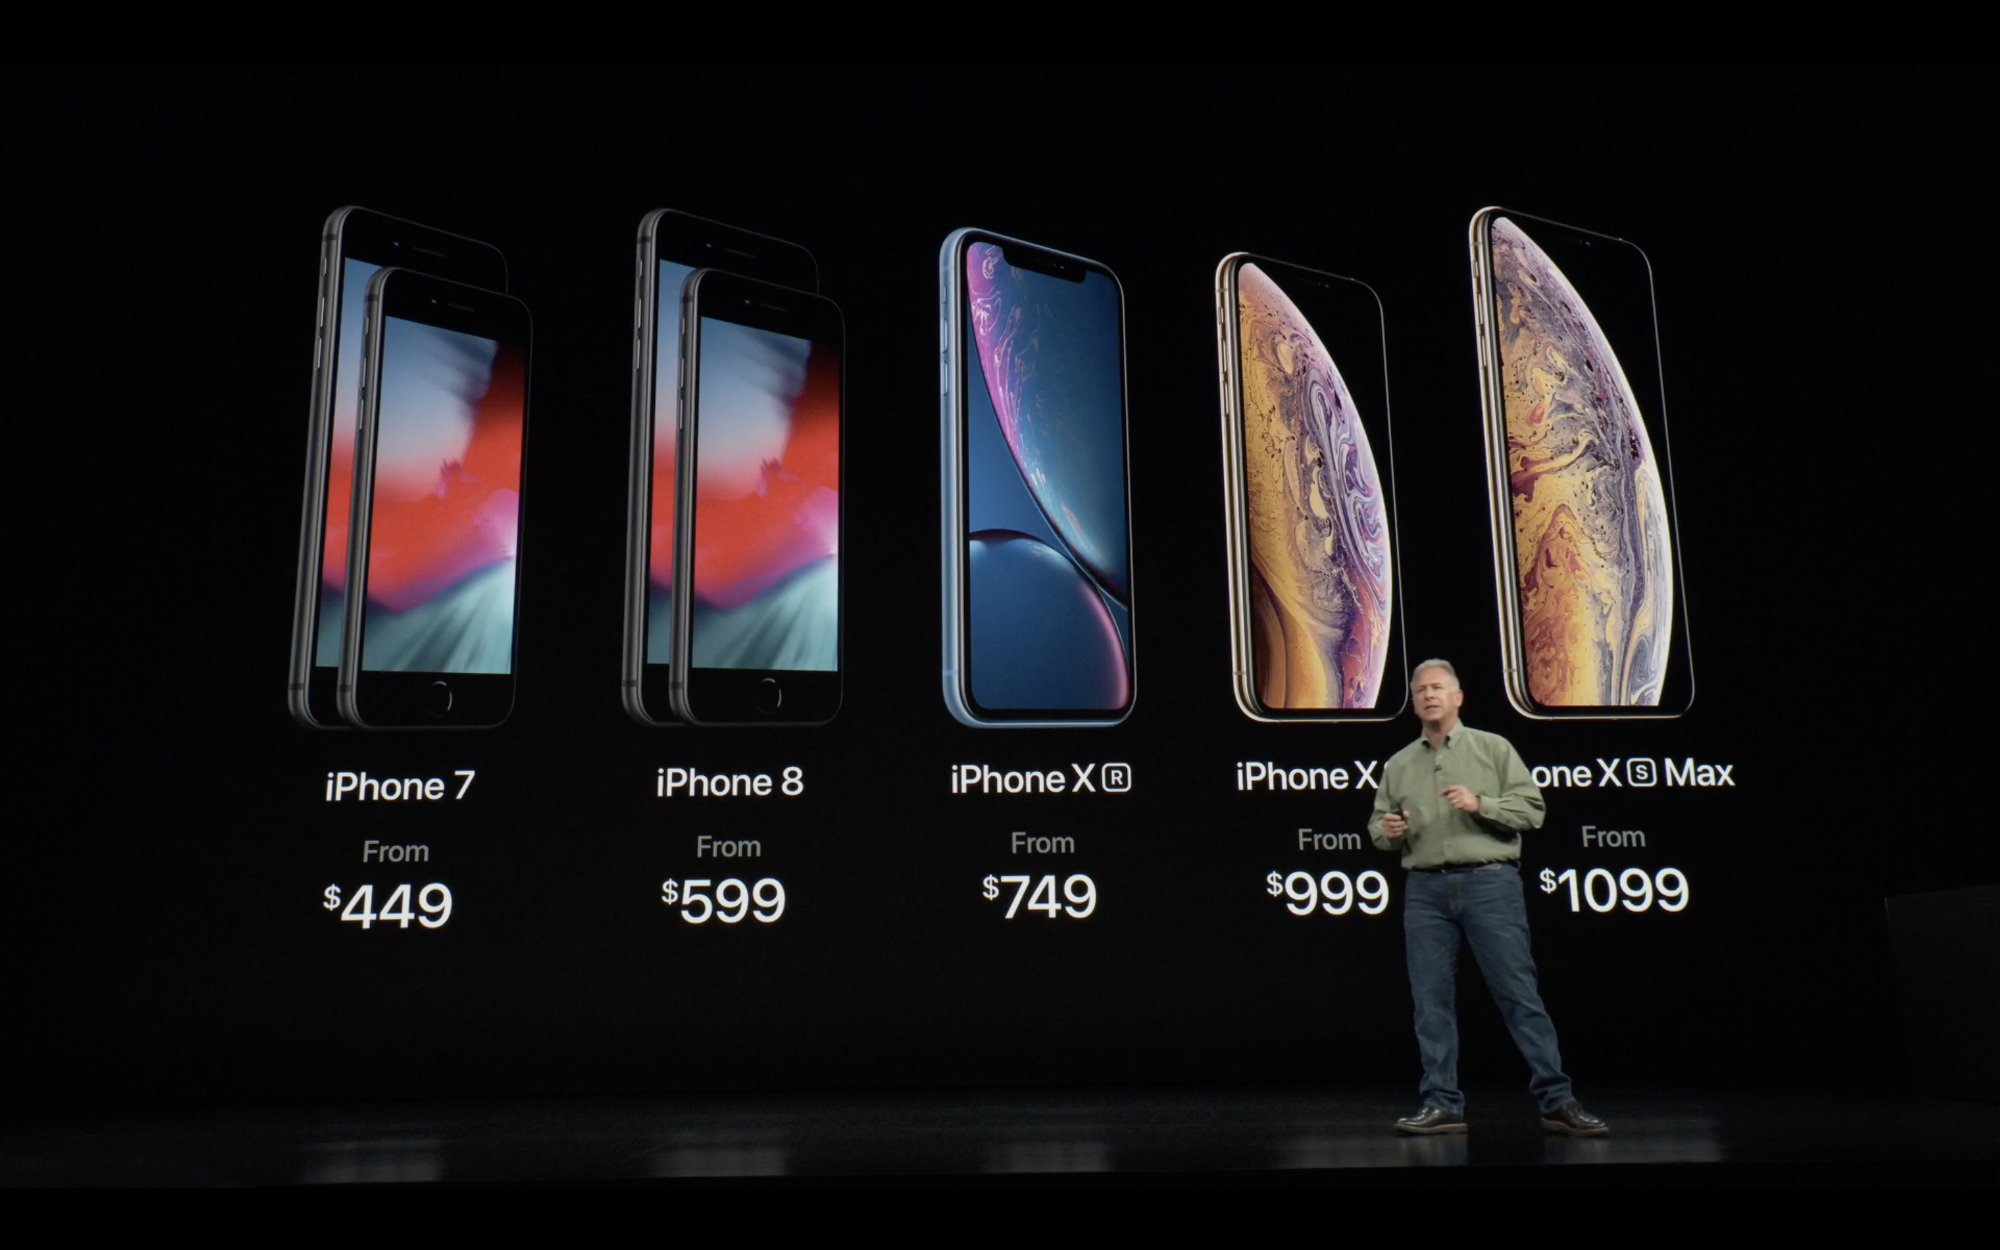 Apple's Product Line is a Mess